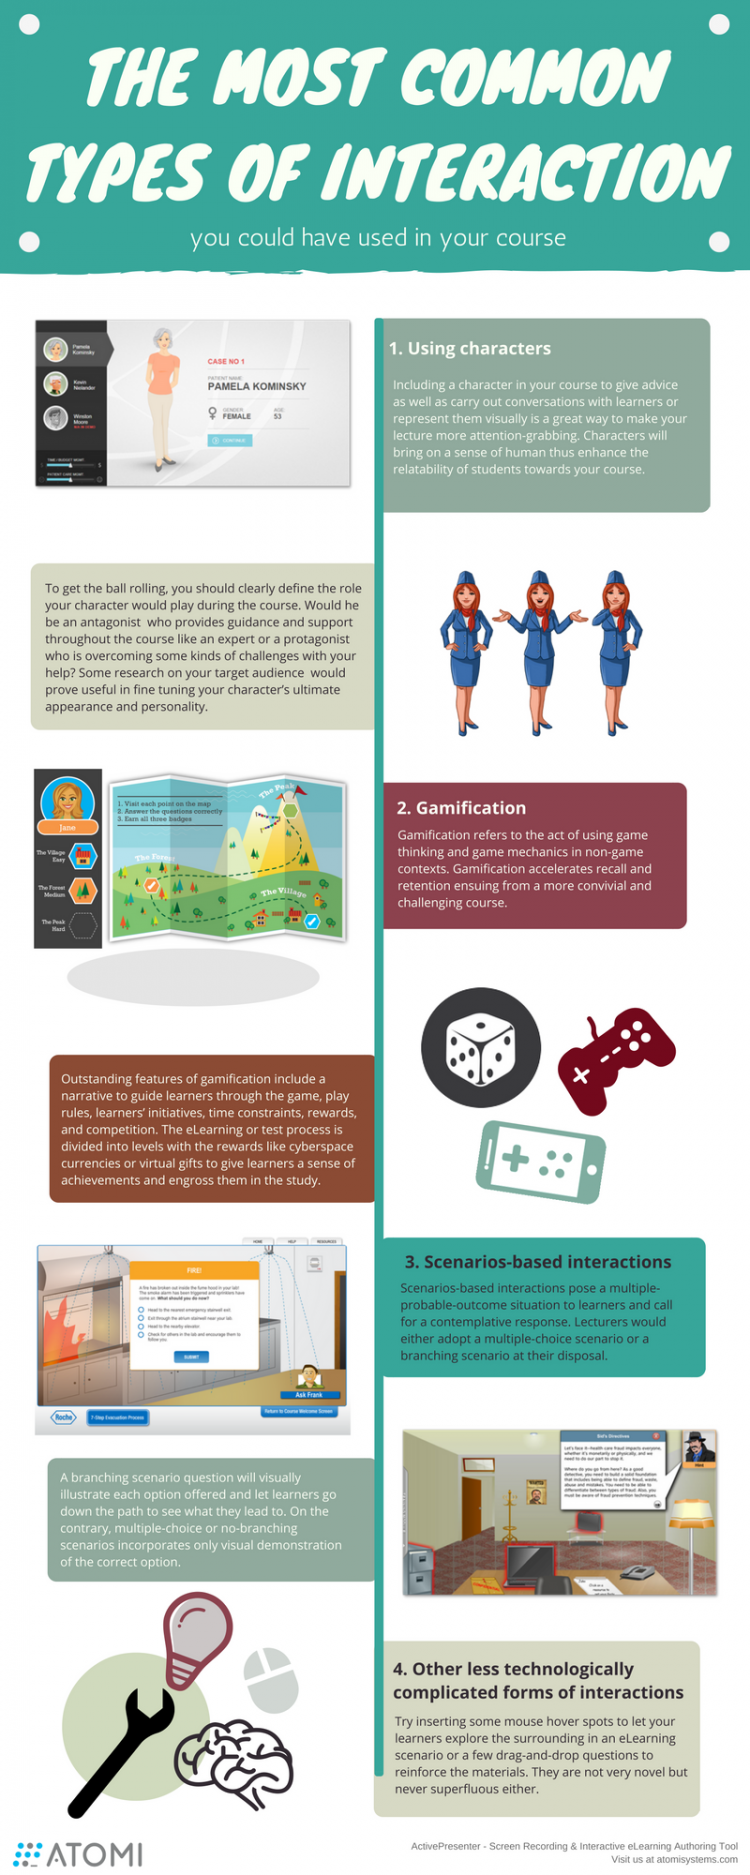 Interactions in eLearning